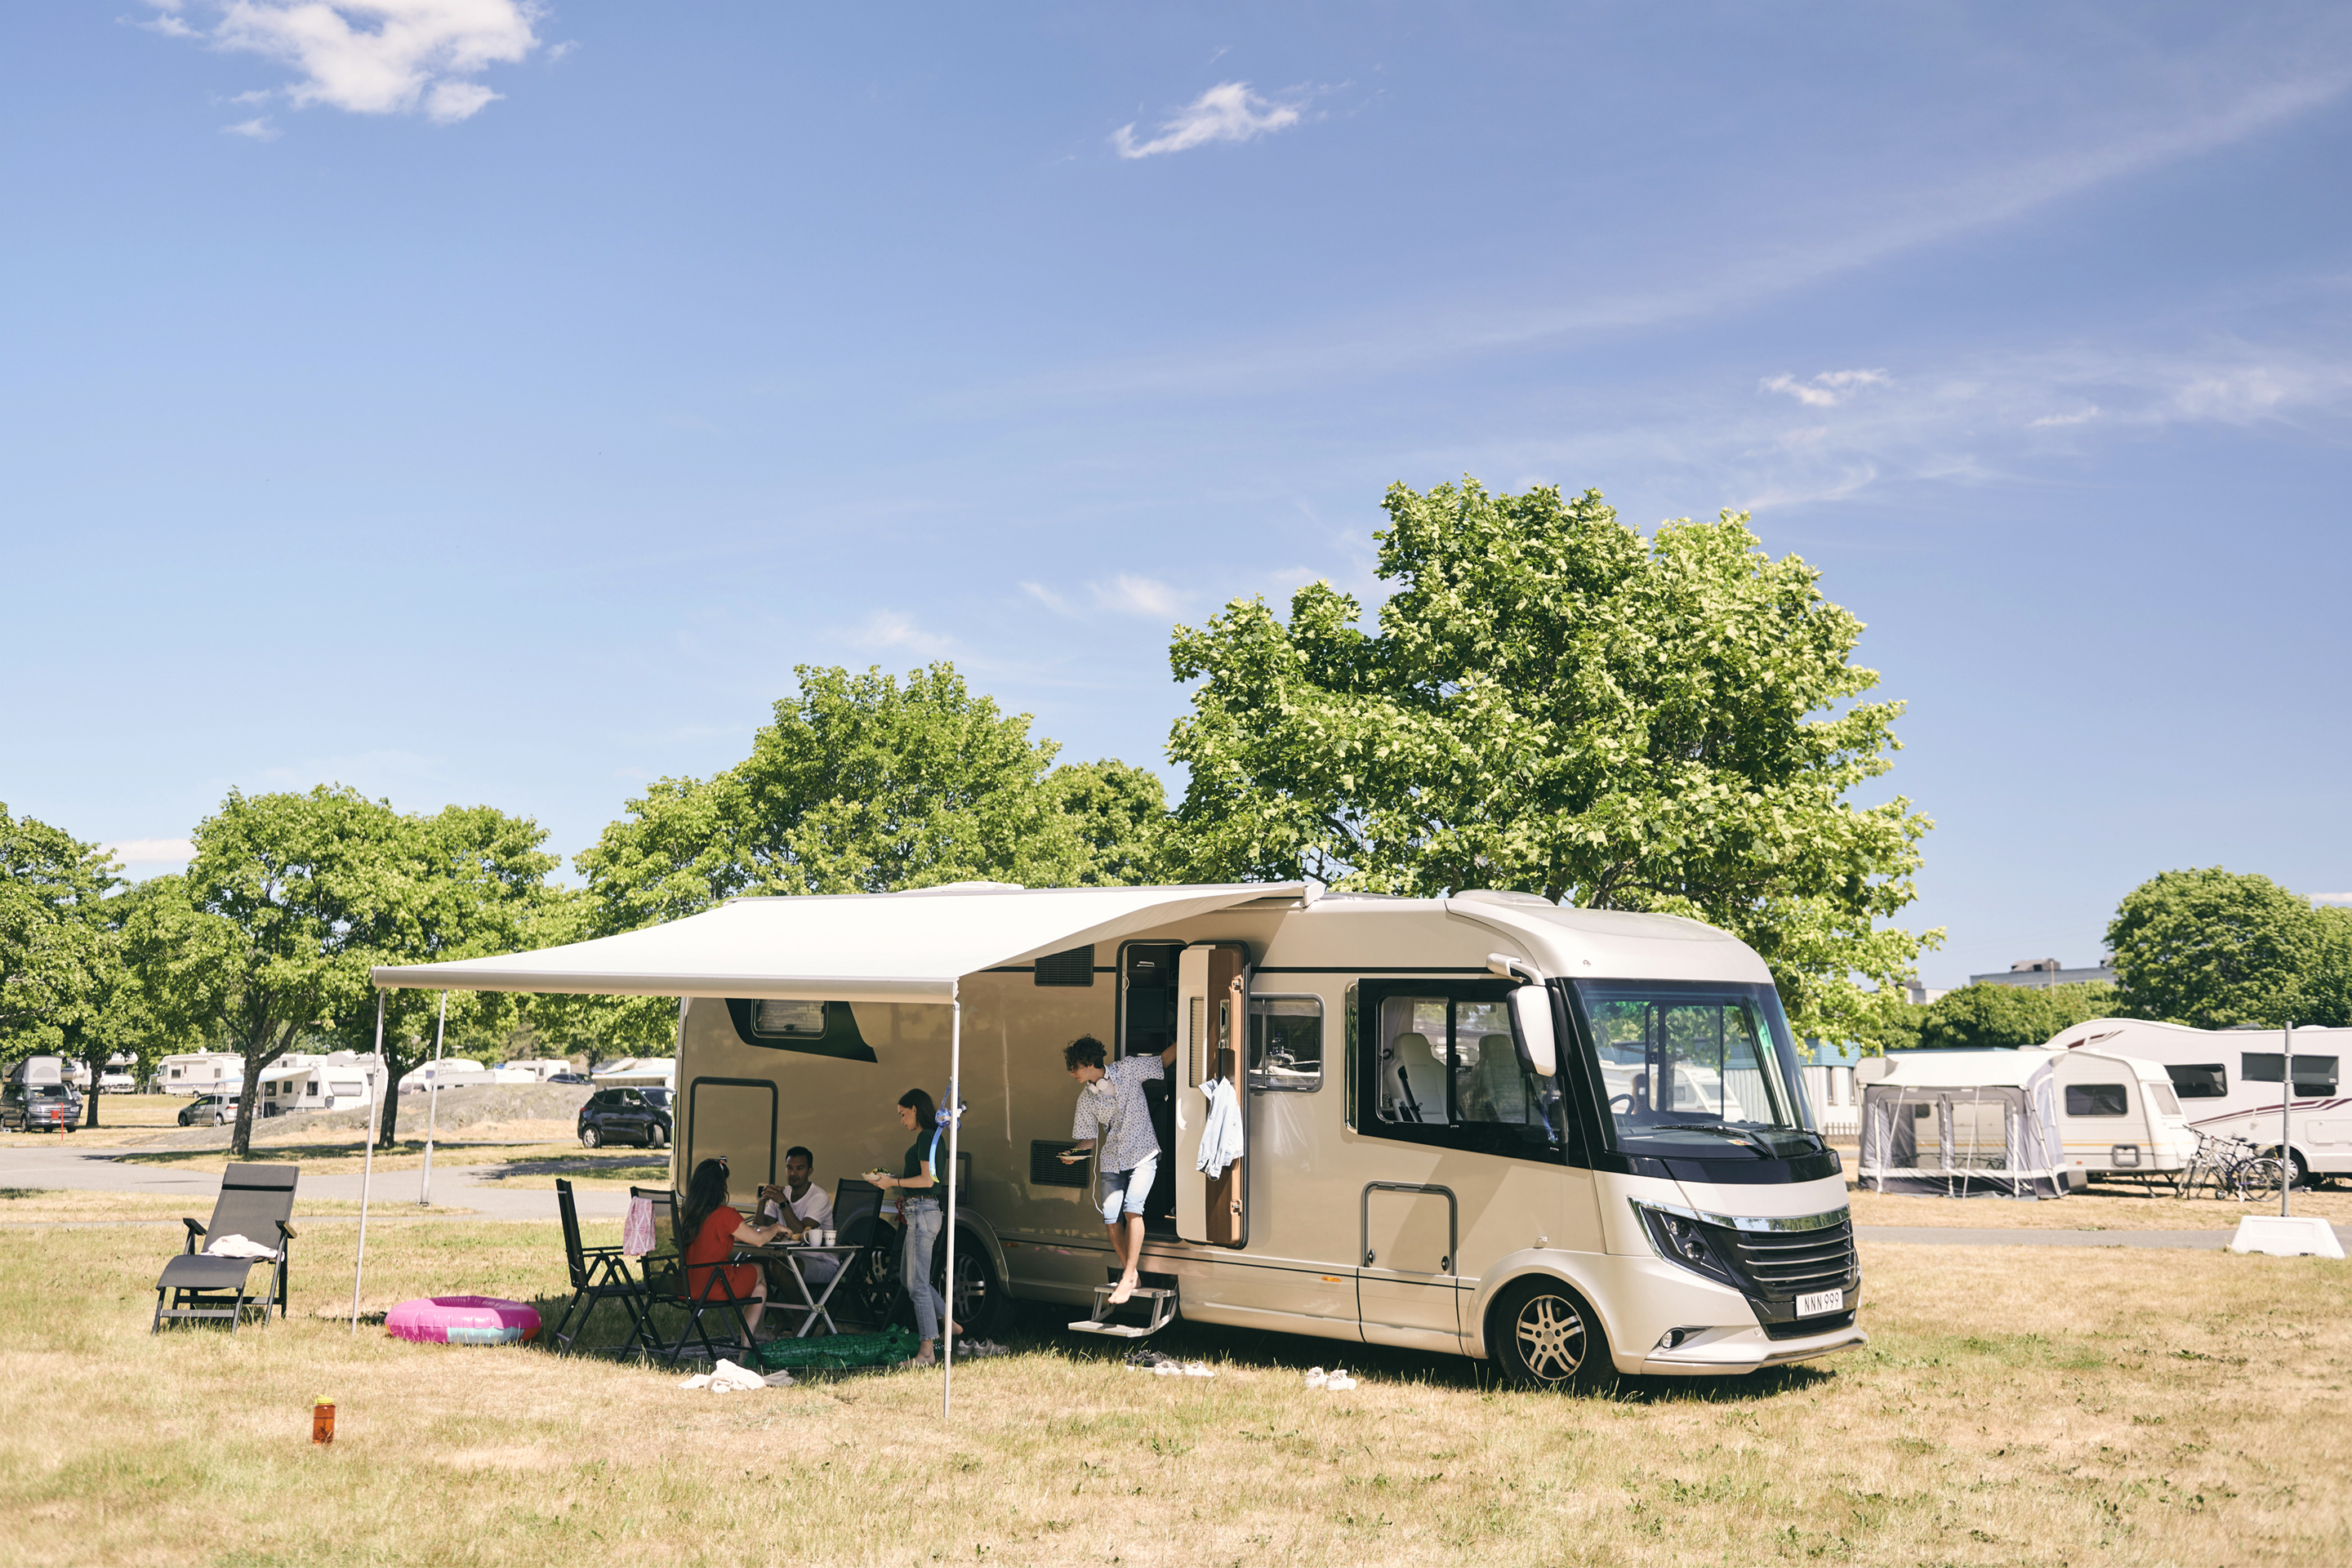 RV Rental Insurance: 5 Things to Know | Money